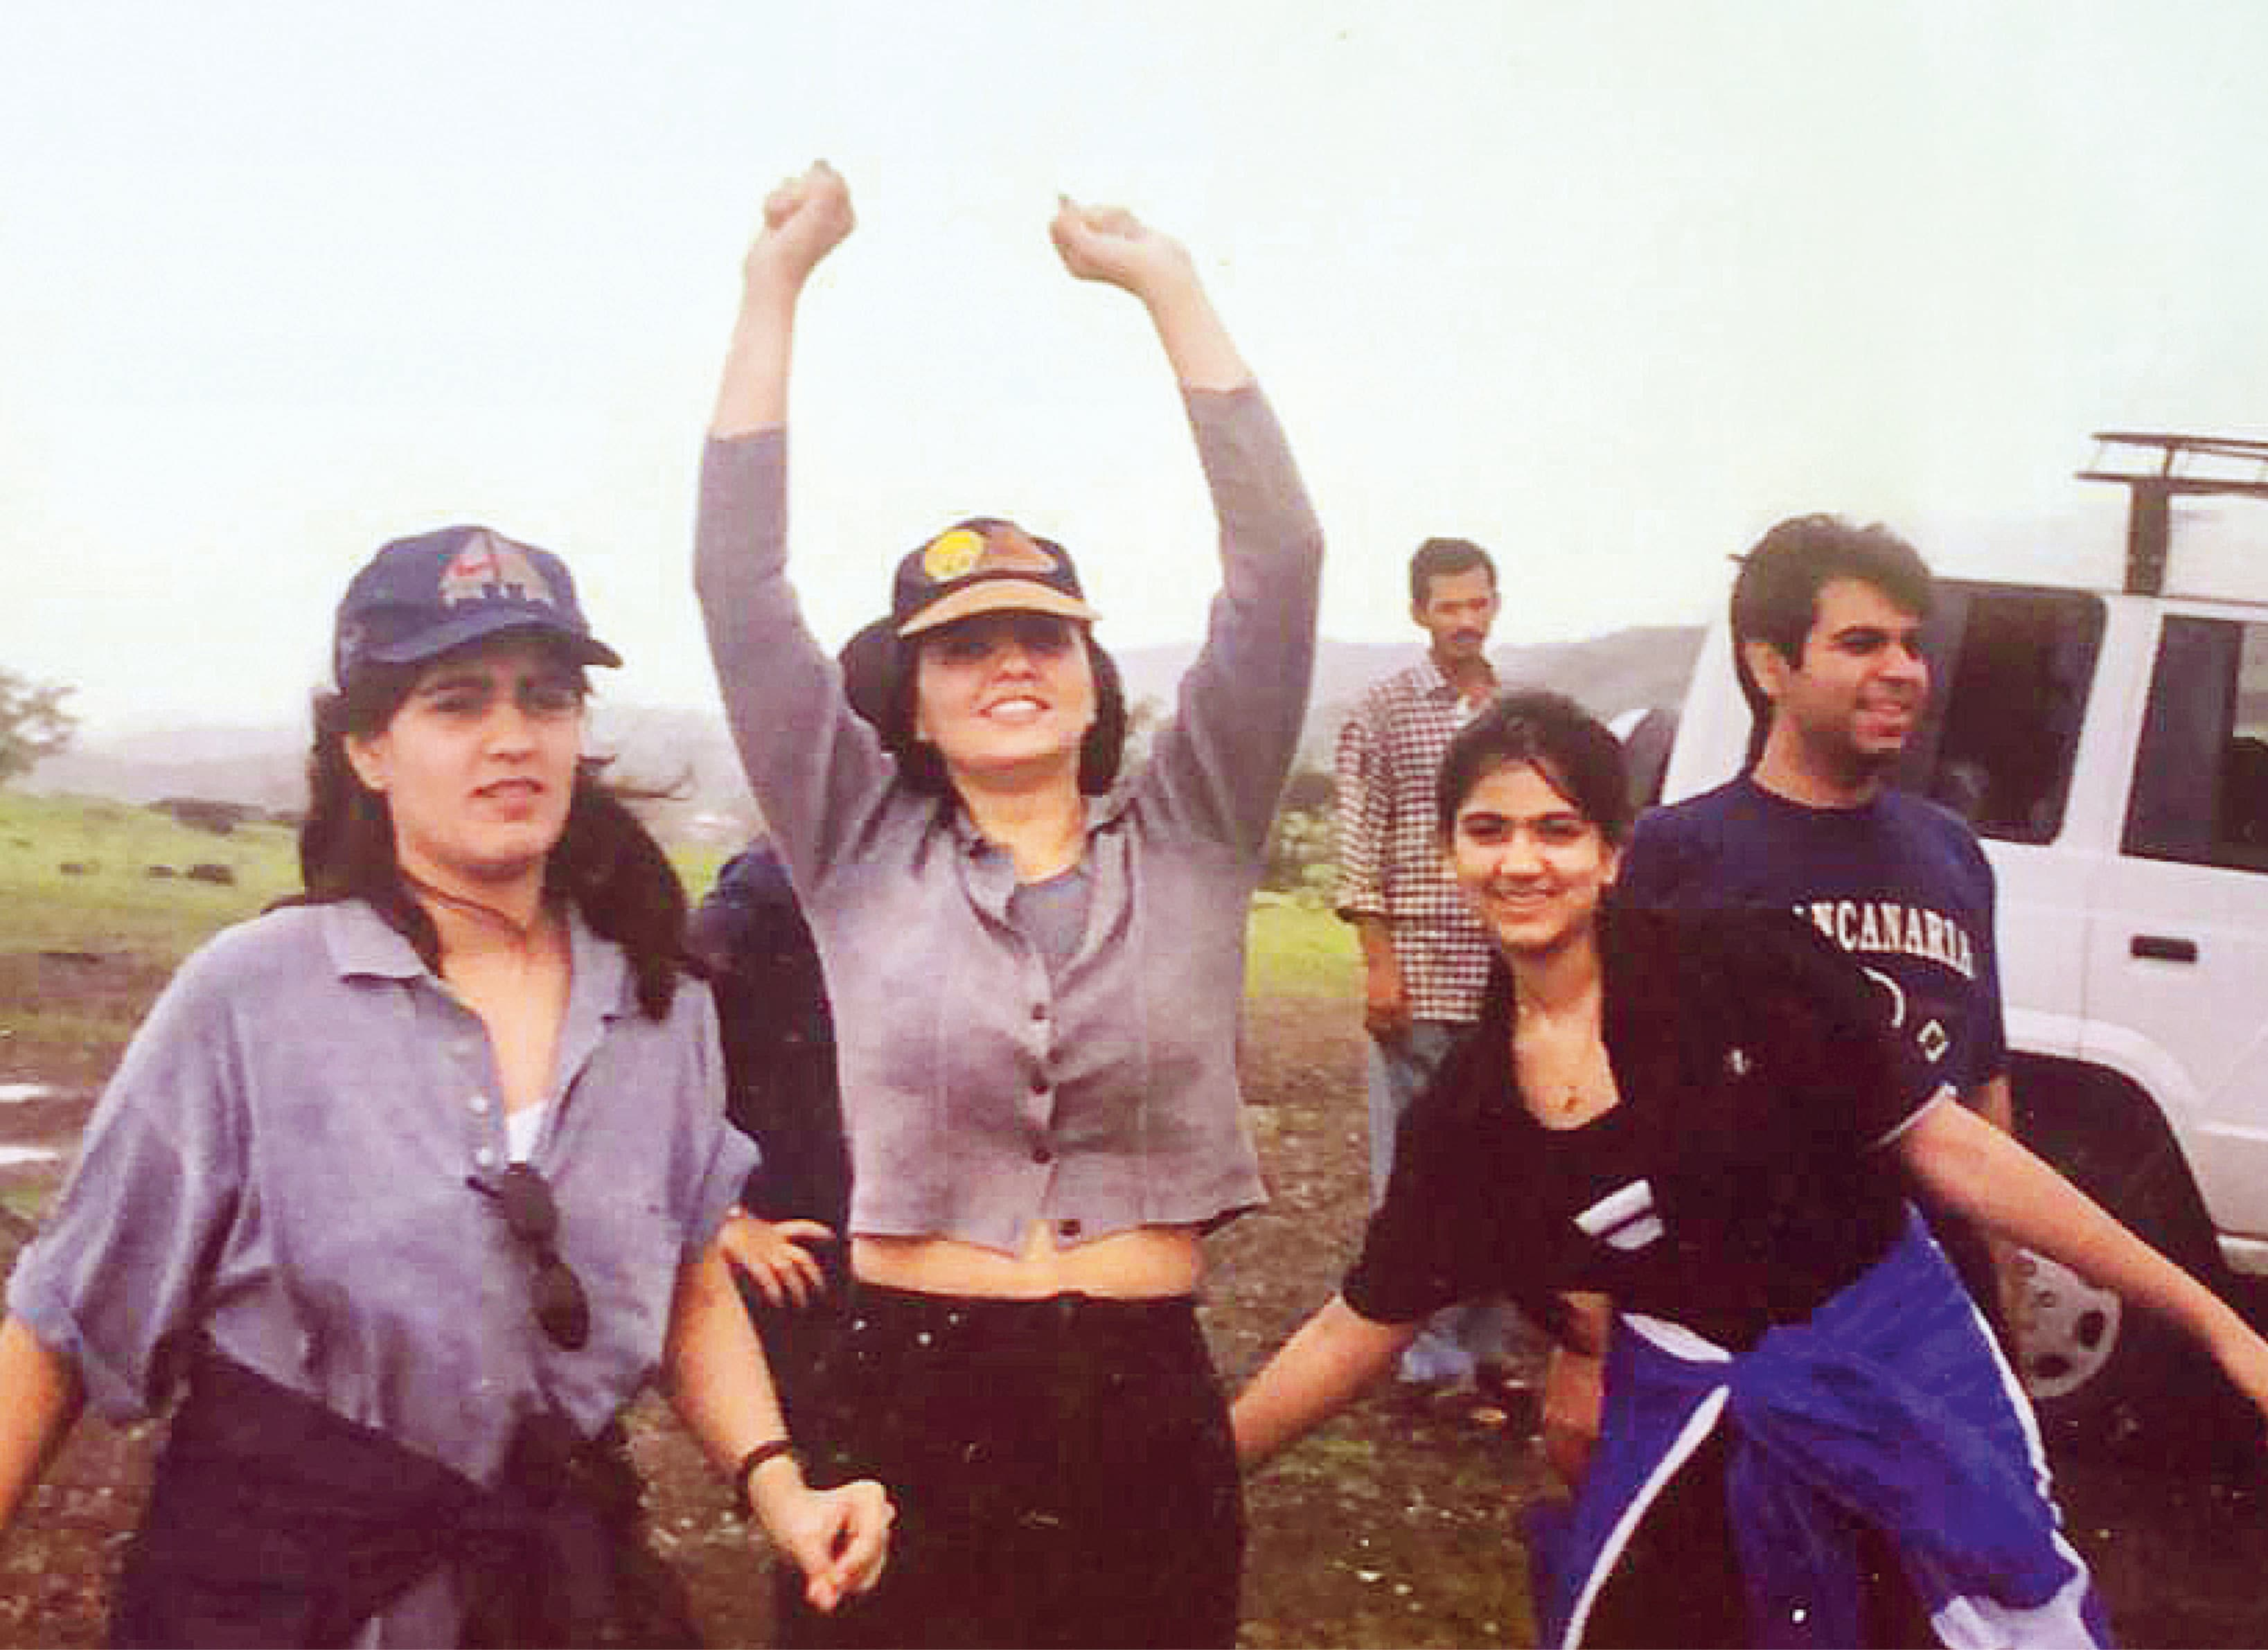 In Panchgani on vacation with her sister Pooja Jaising, her cousin Amit Chhabria and her daughter Nishka in the 90s